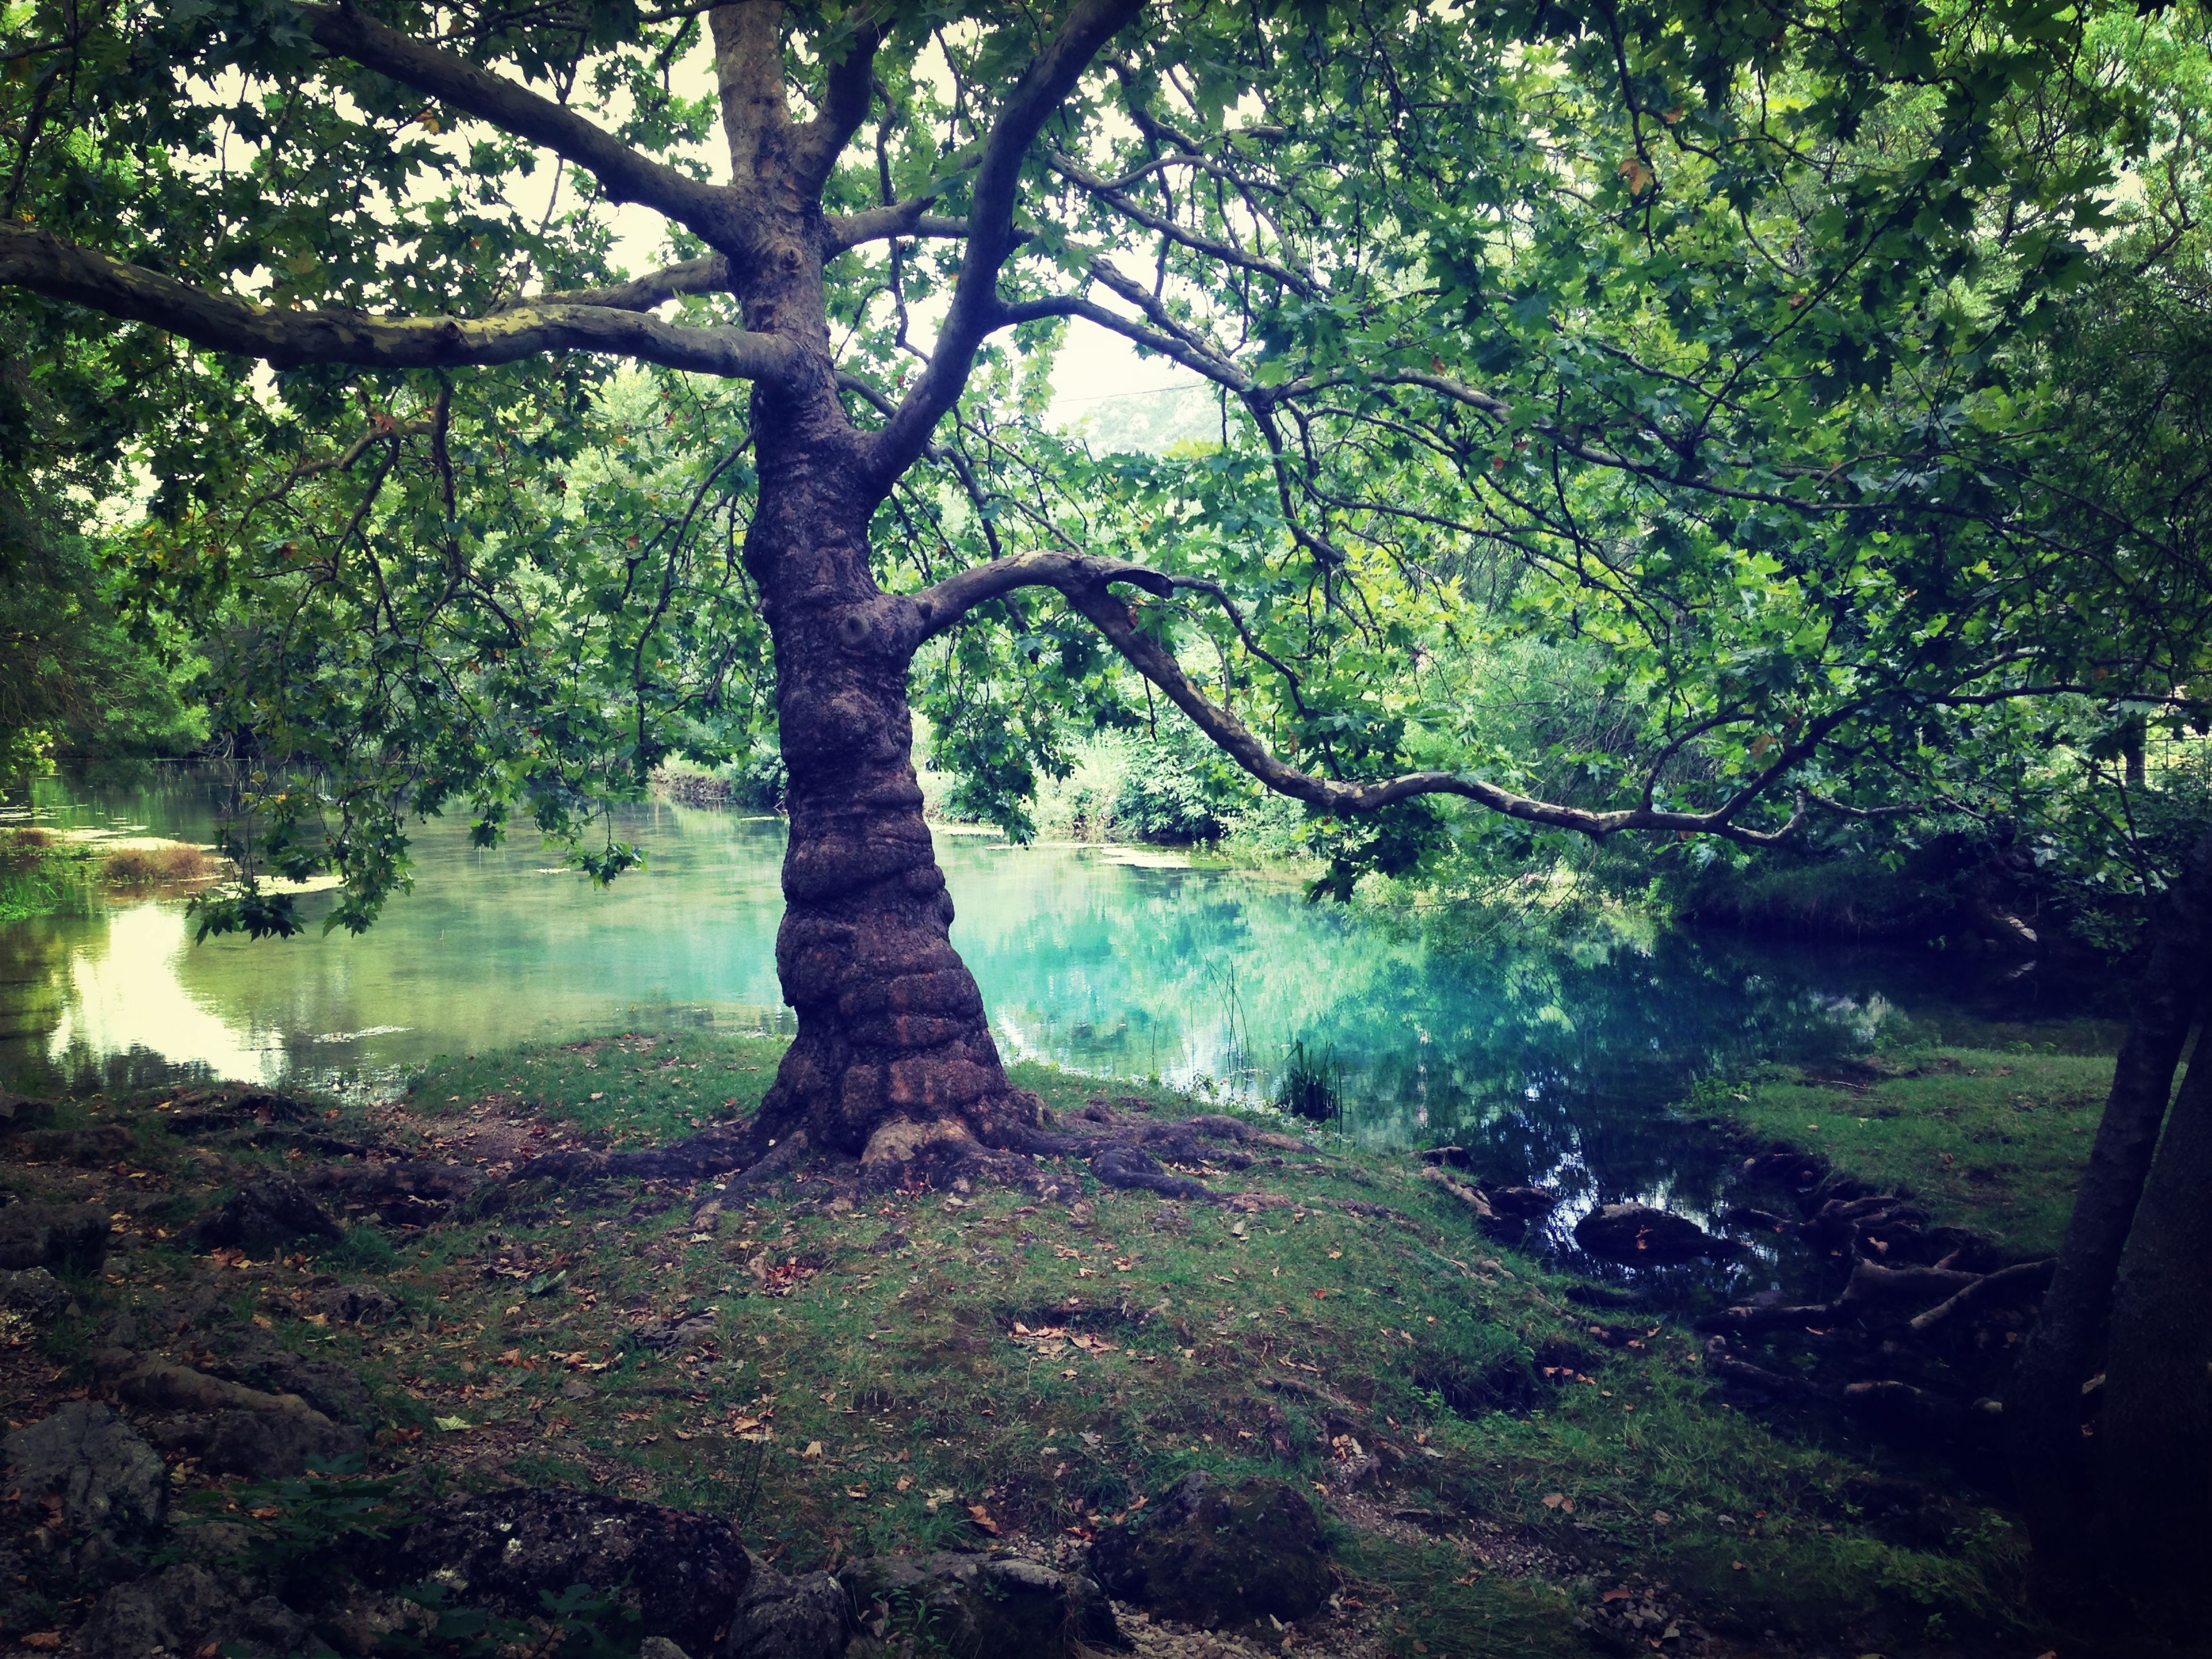 tree, water, reflection, growth, tranquility, branch, nature, river, green color, lake, bridge - man made structure, tranquil scene, beauty in nature, pond, plant, connection, scenics, park - man made space, day, tree trunk